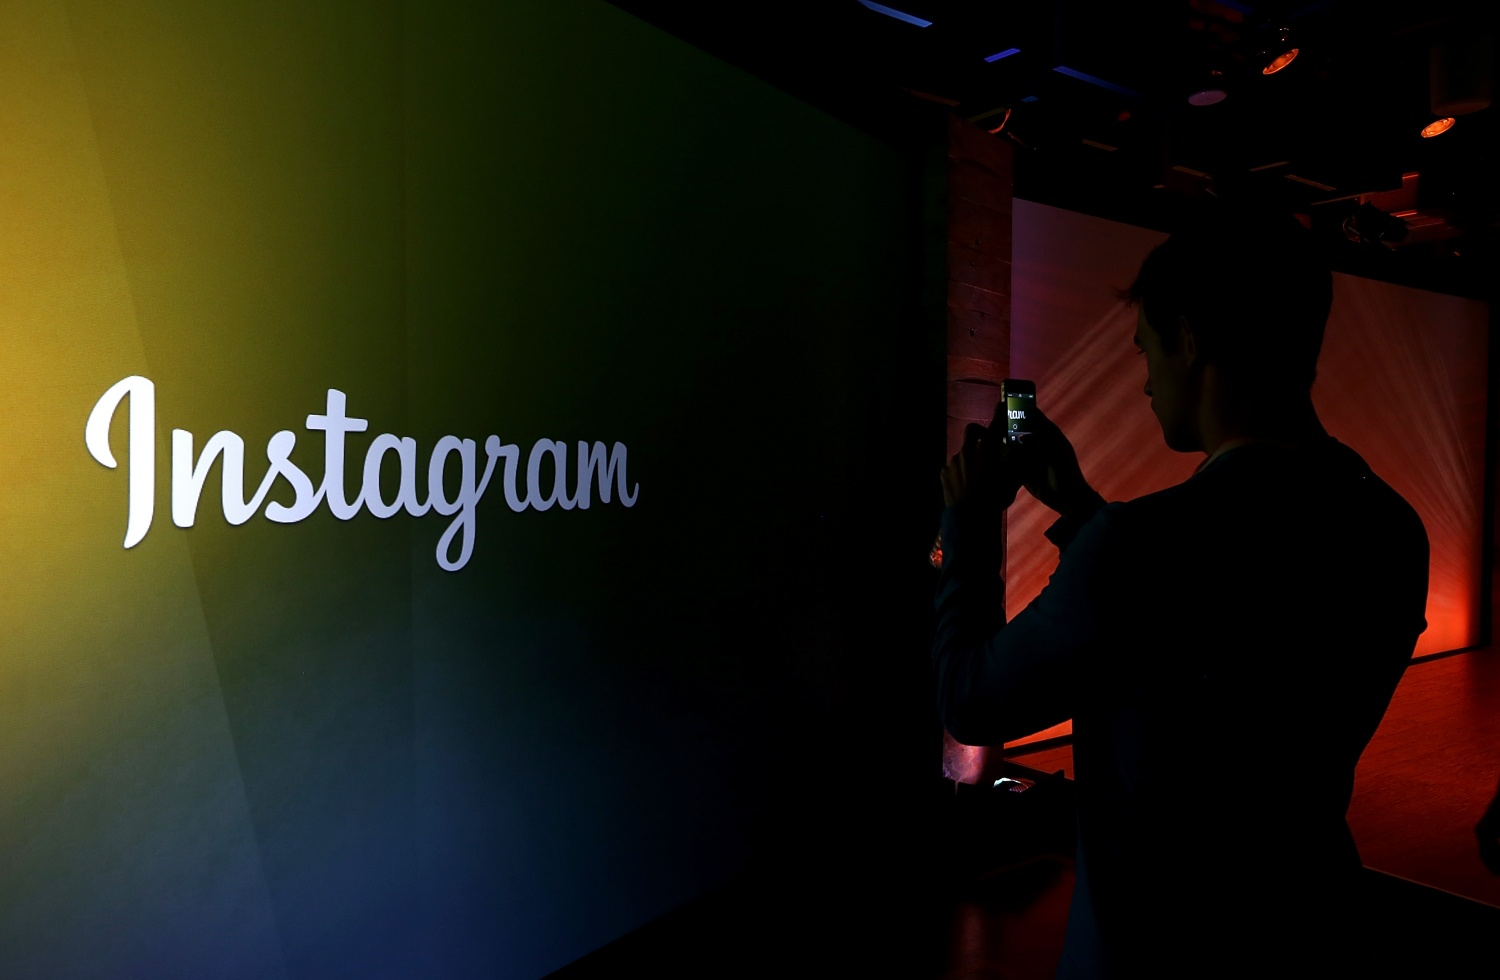 Instagram Logo in Facebook Headquarters